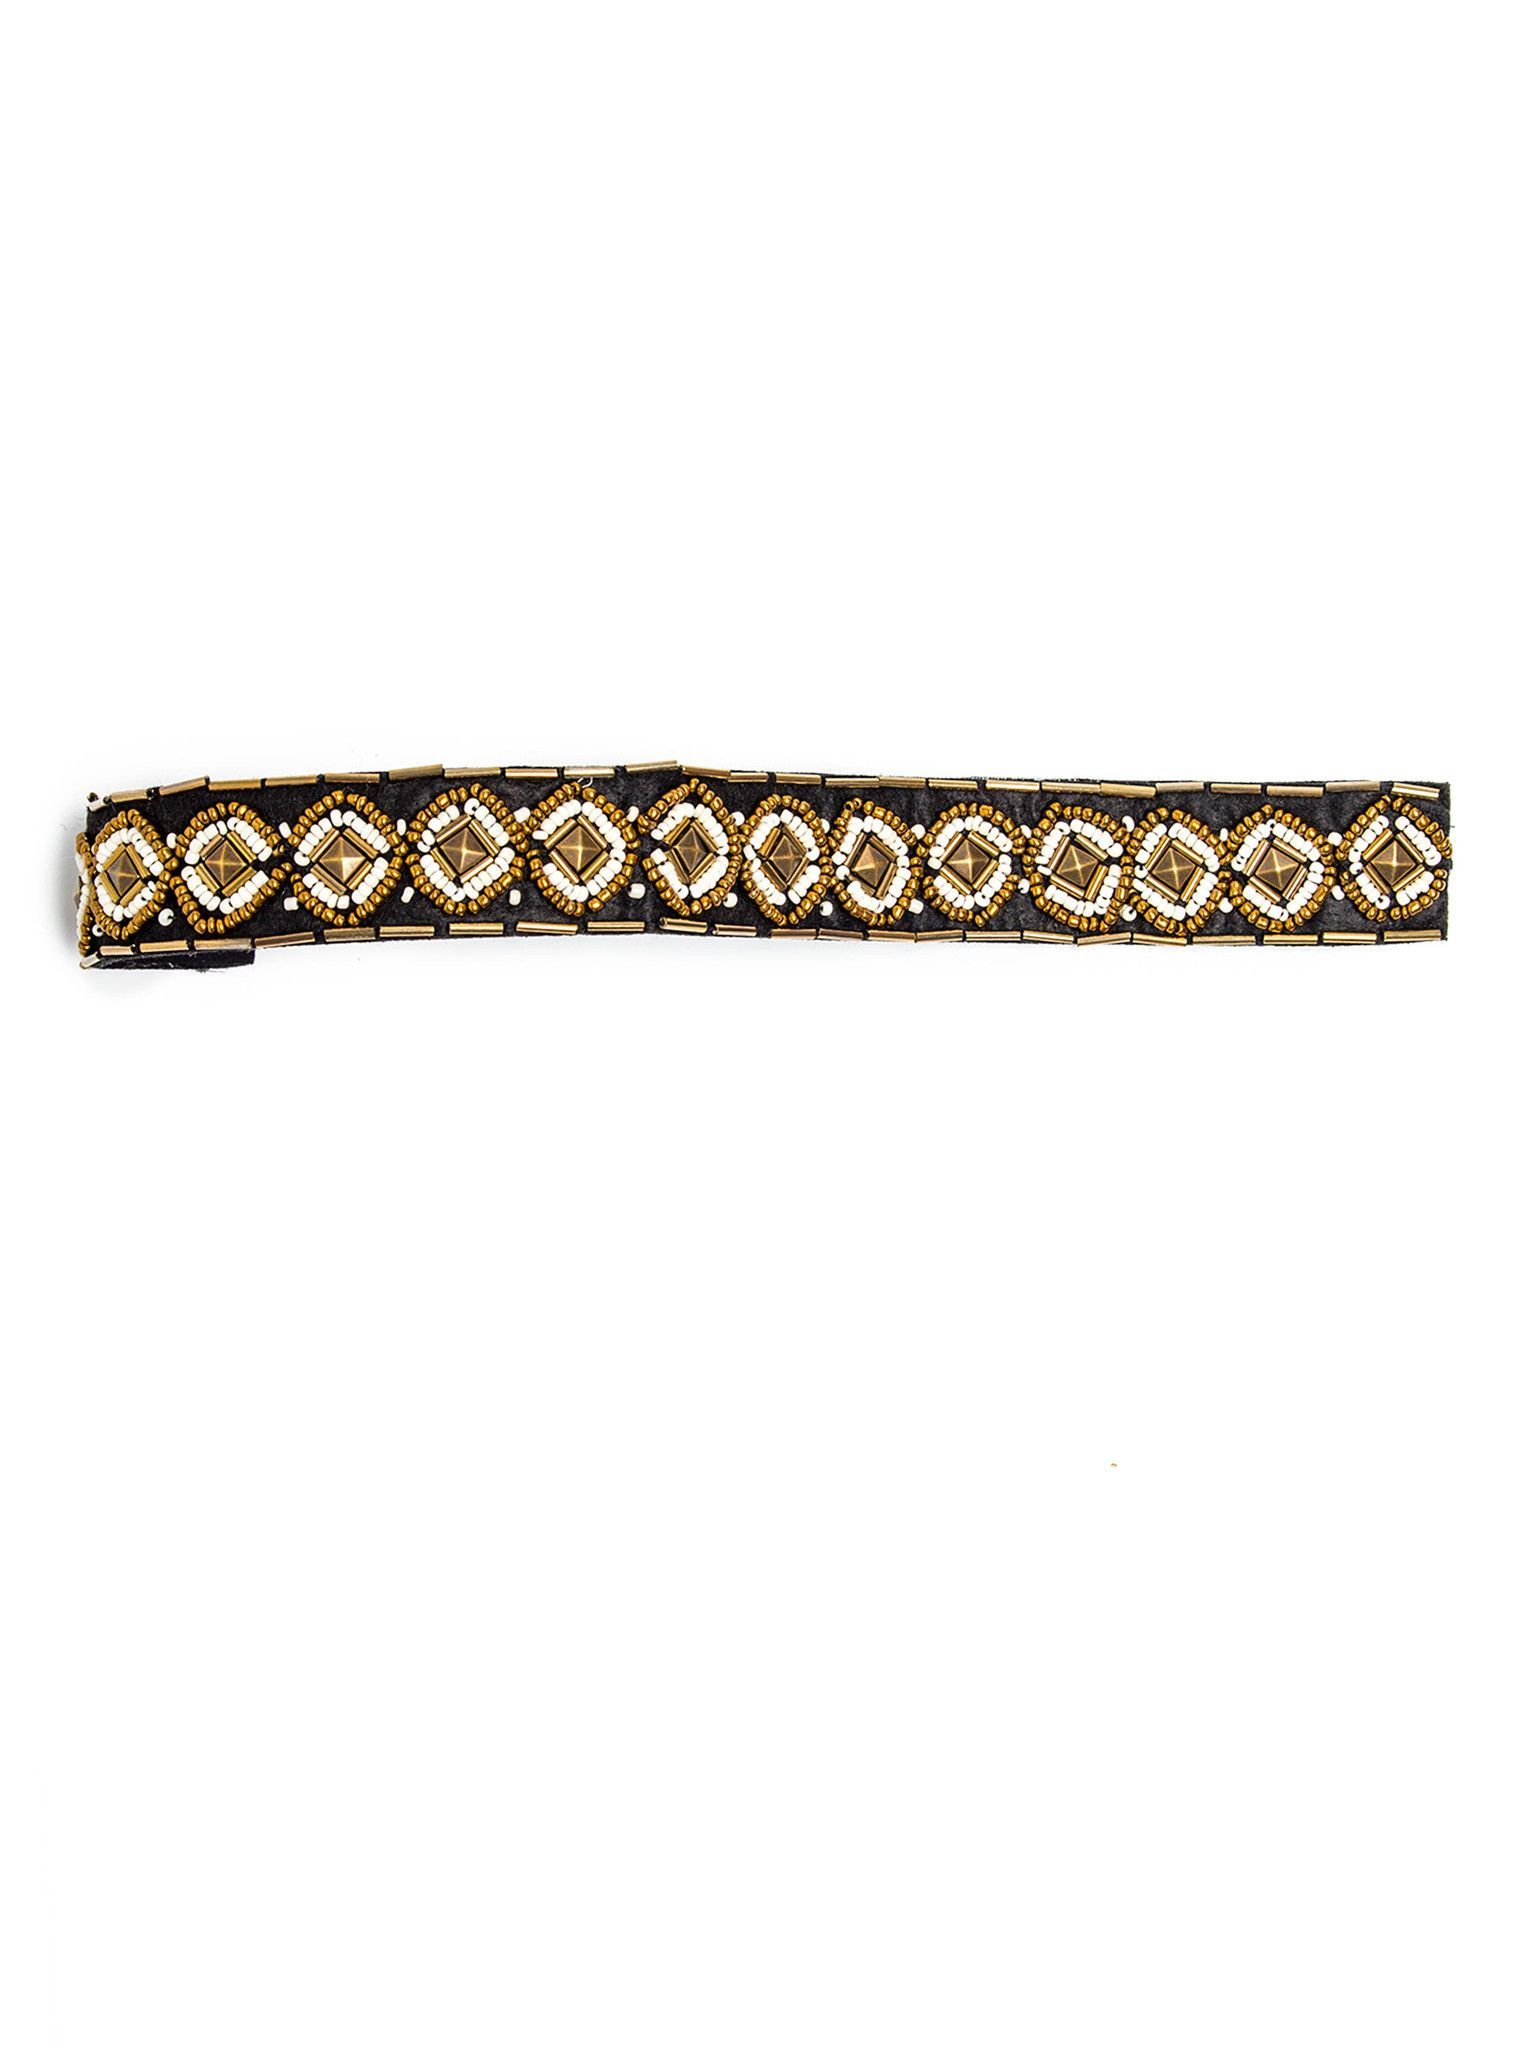 Pavati Headband, Beaded Headpiece With Diamond Pattern